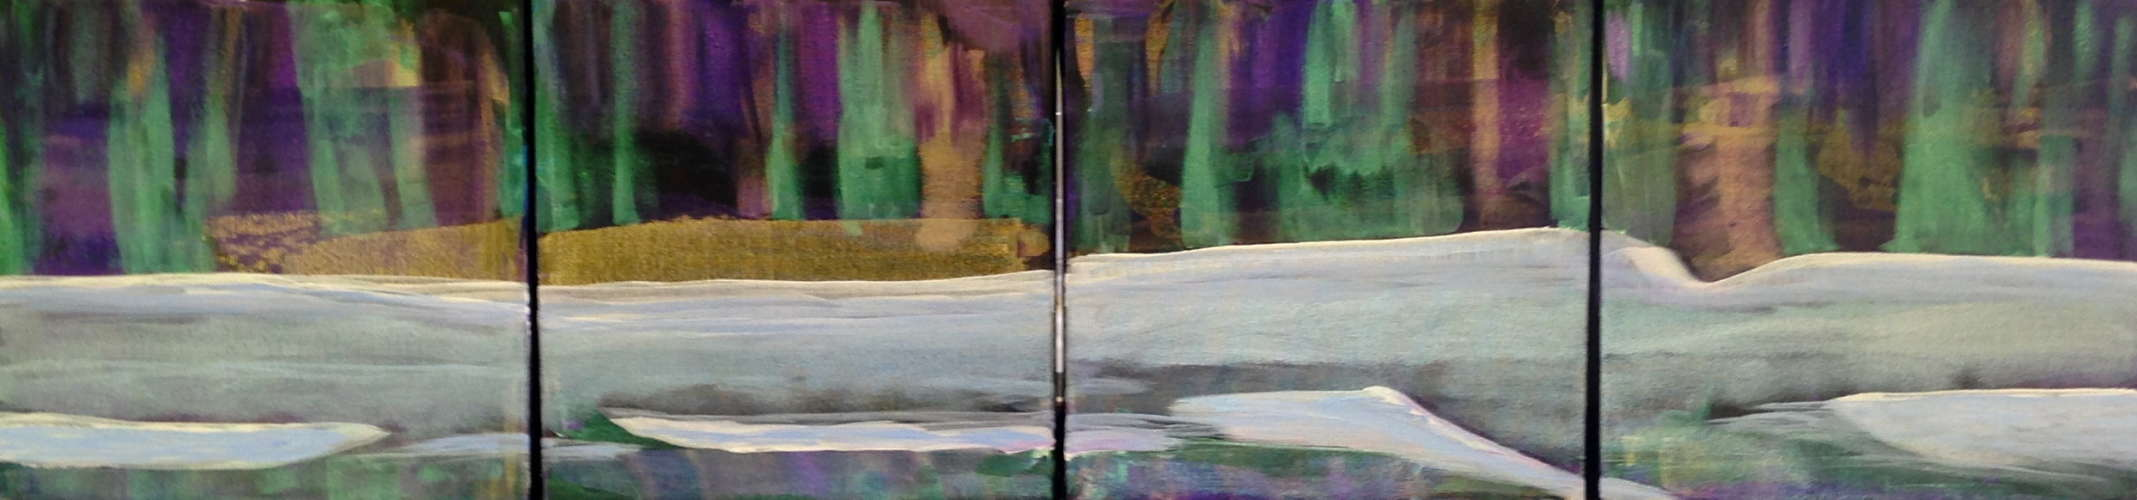 Northern Lights, Acrylic, 10 x 40, $$325.0000